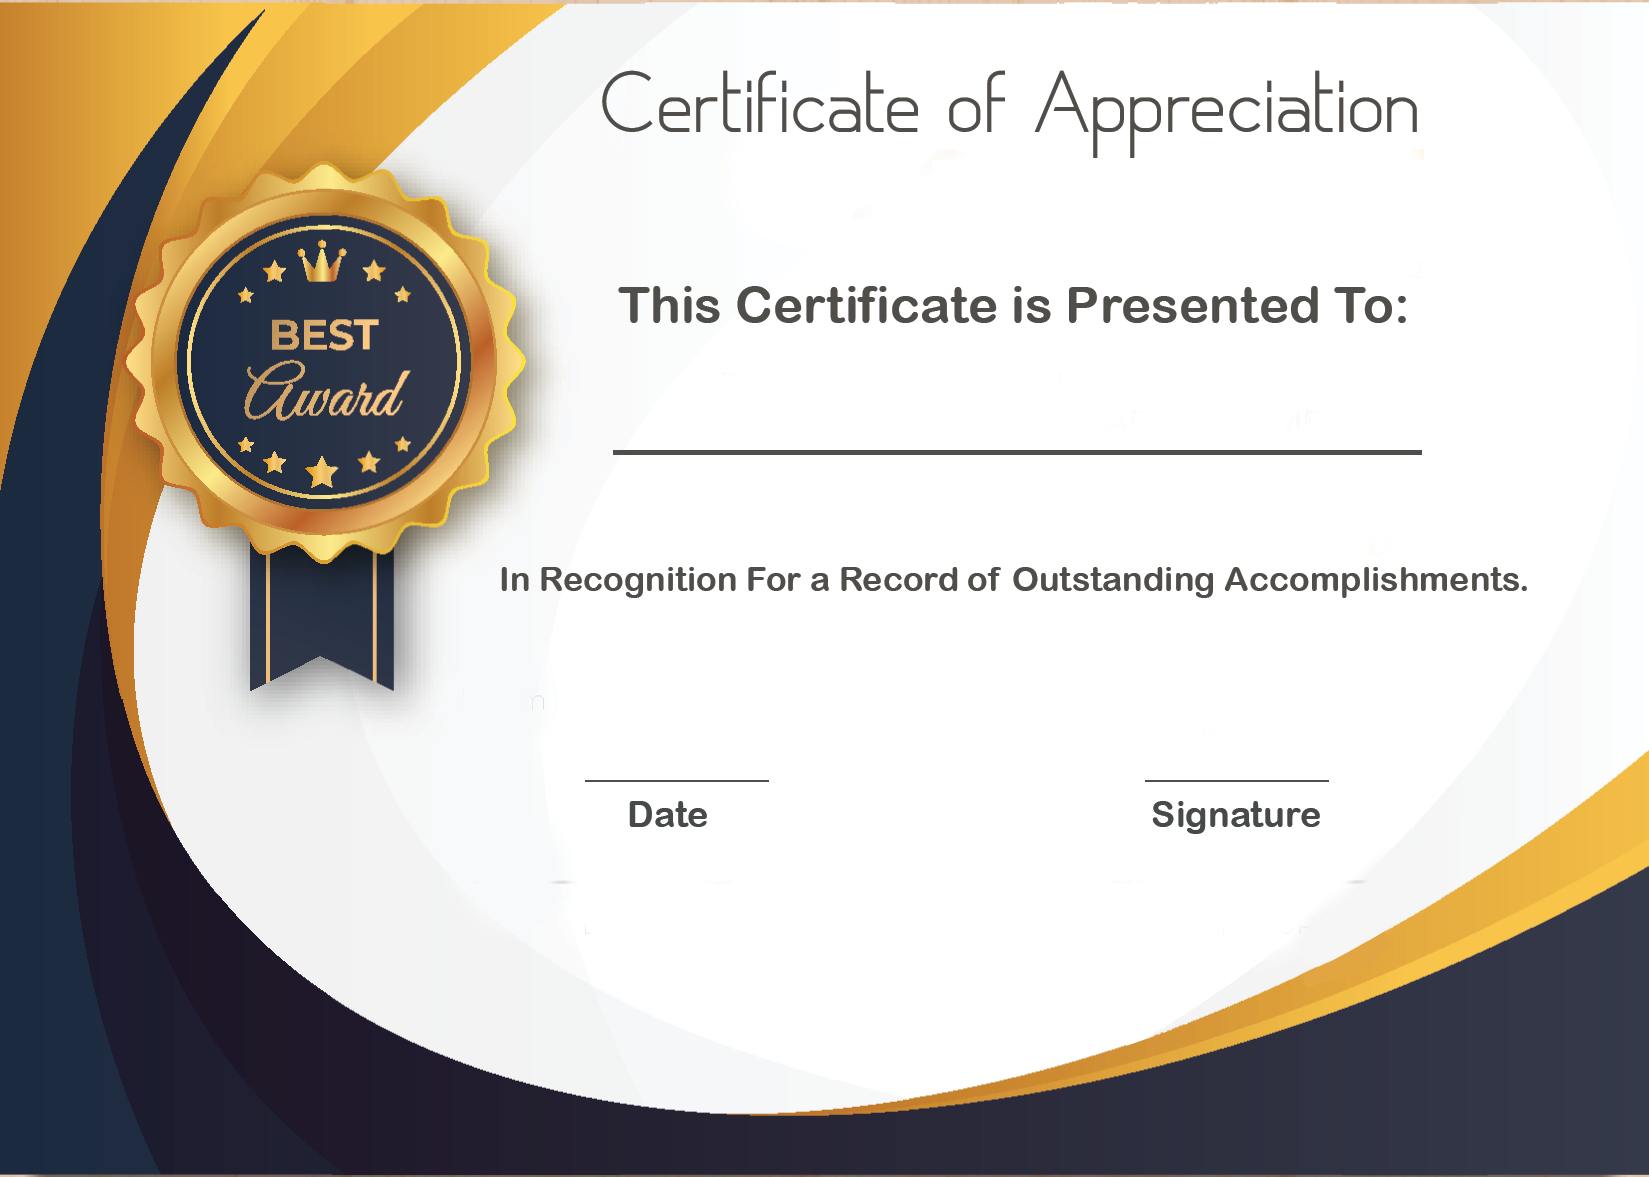 Free Sample Format Of Certificate Of Appreciation Template inside Amazing Free Template For Certificate Of Recognition